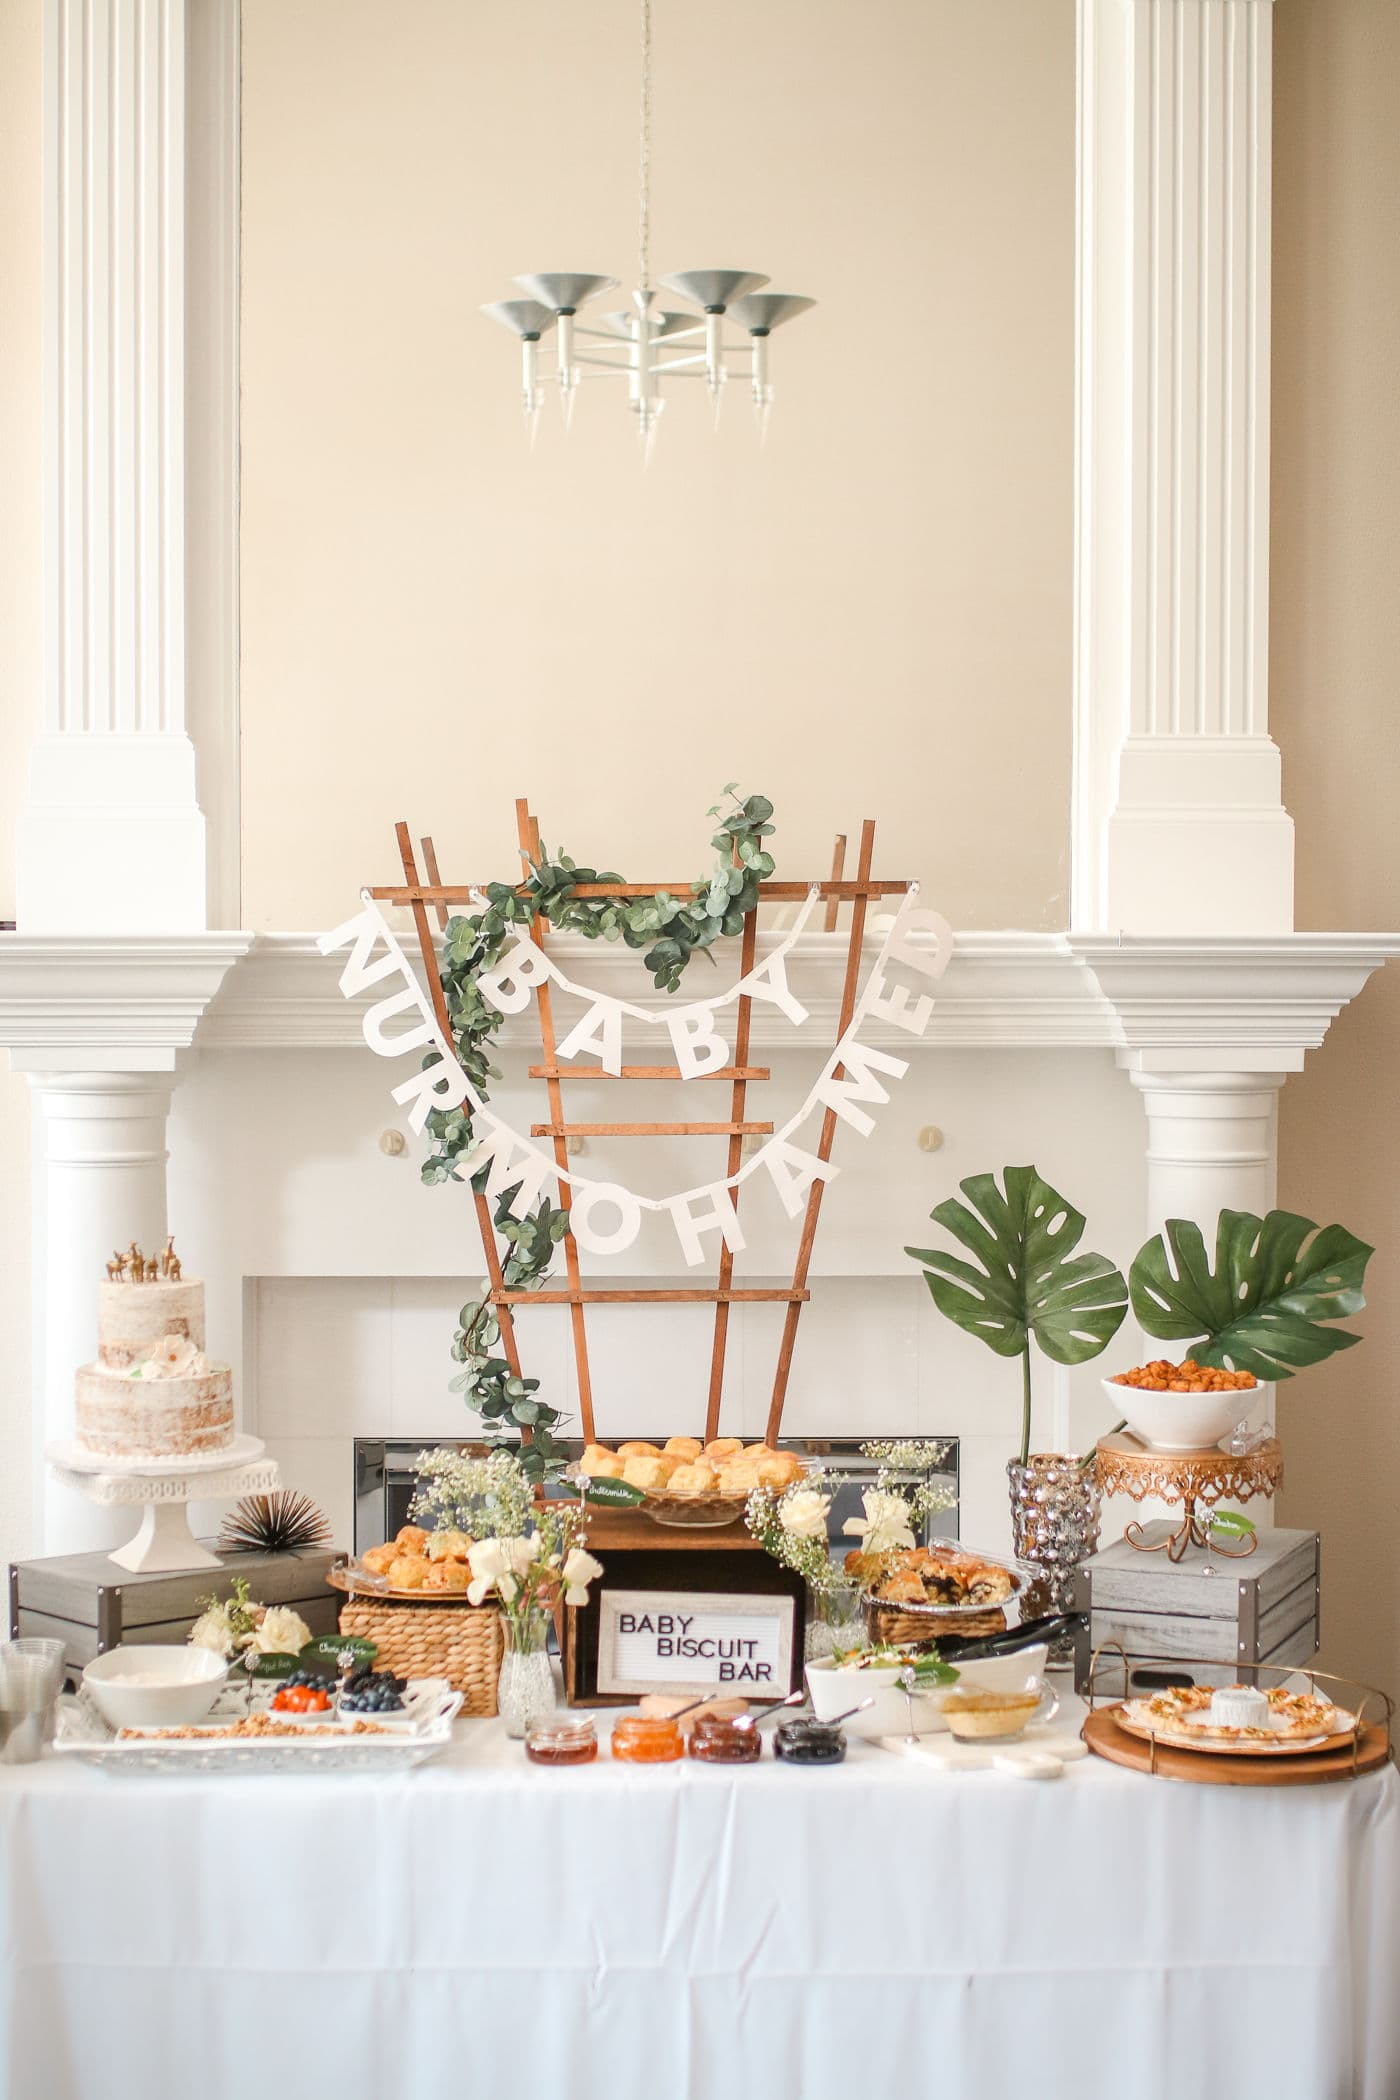 How To Throw Pinterest Perfect Gender Neutral Baby Shower Hey Simply Beauty Lifestyle Blog